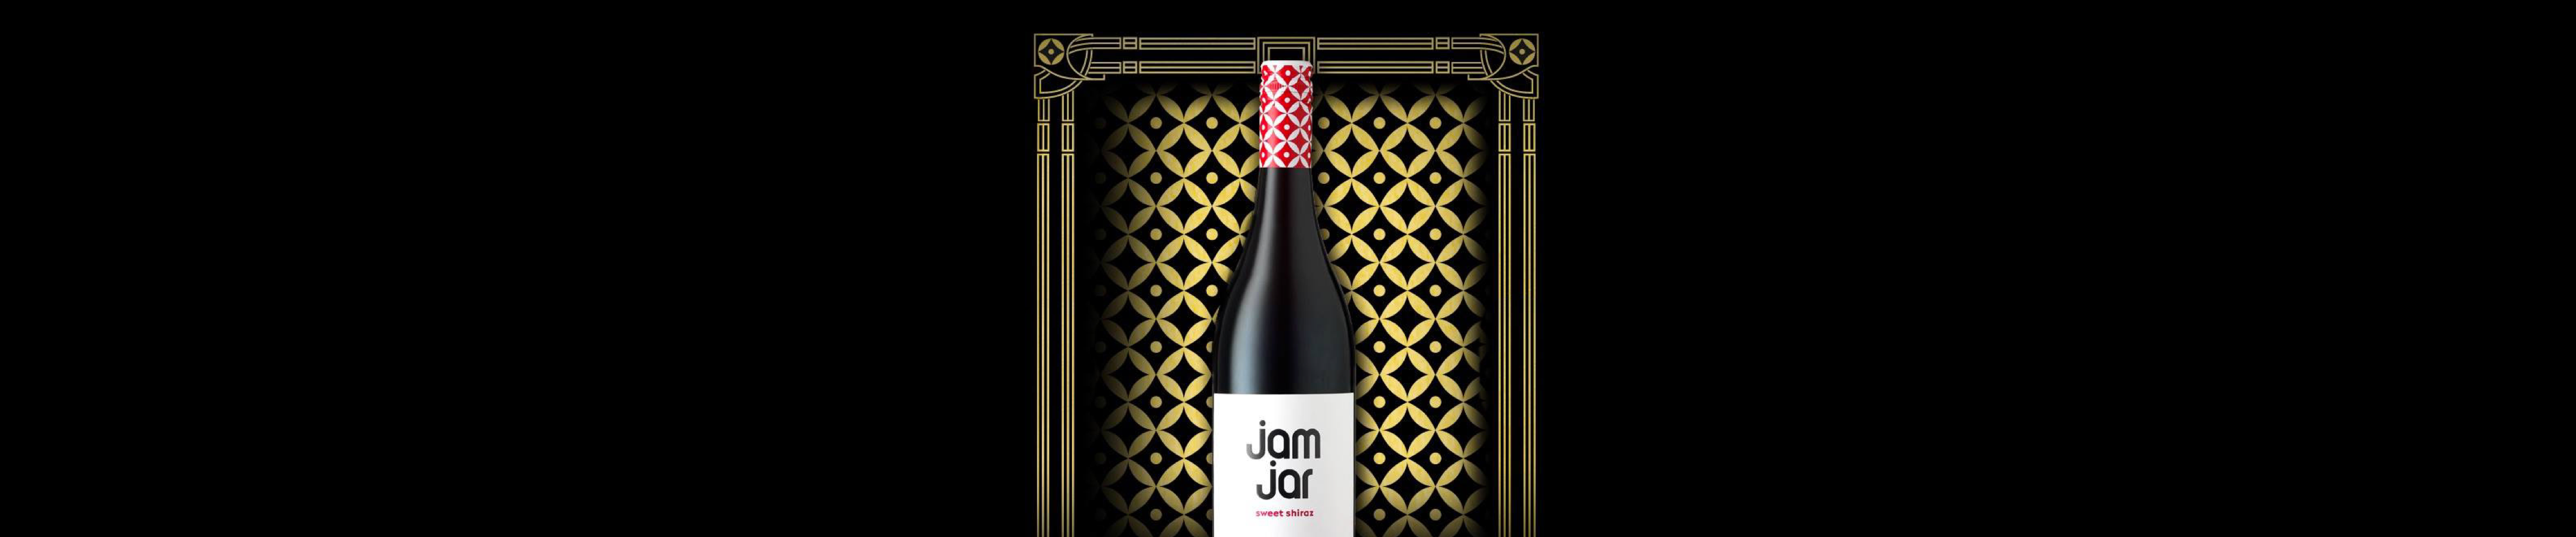 Jam Jar wines are crafted for consumers seeking quality sweet wine – and these fresh, fruity, semi-sweet bottlings deliver. Refreshing and approachable with a perfect balance between sweetness and acidity, Jam Jar Wines are sweet perfection.